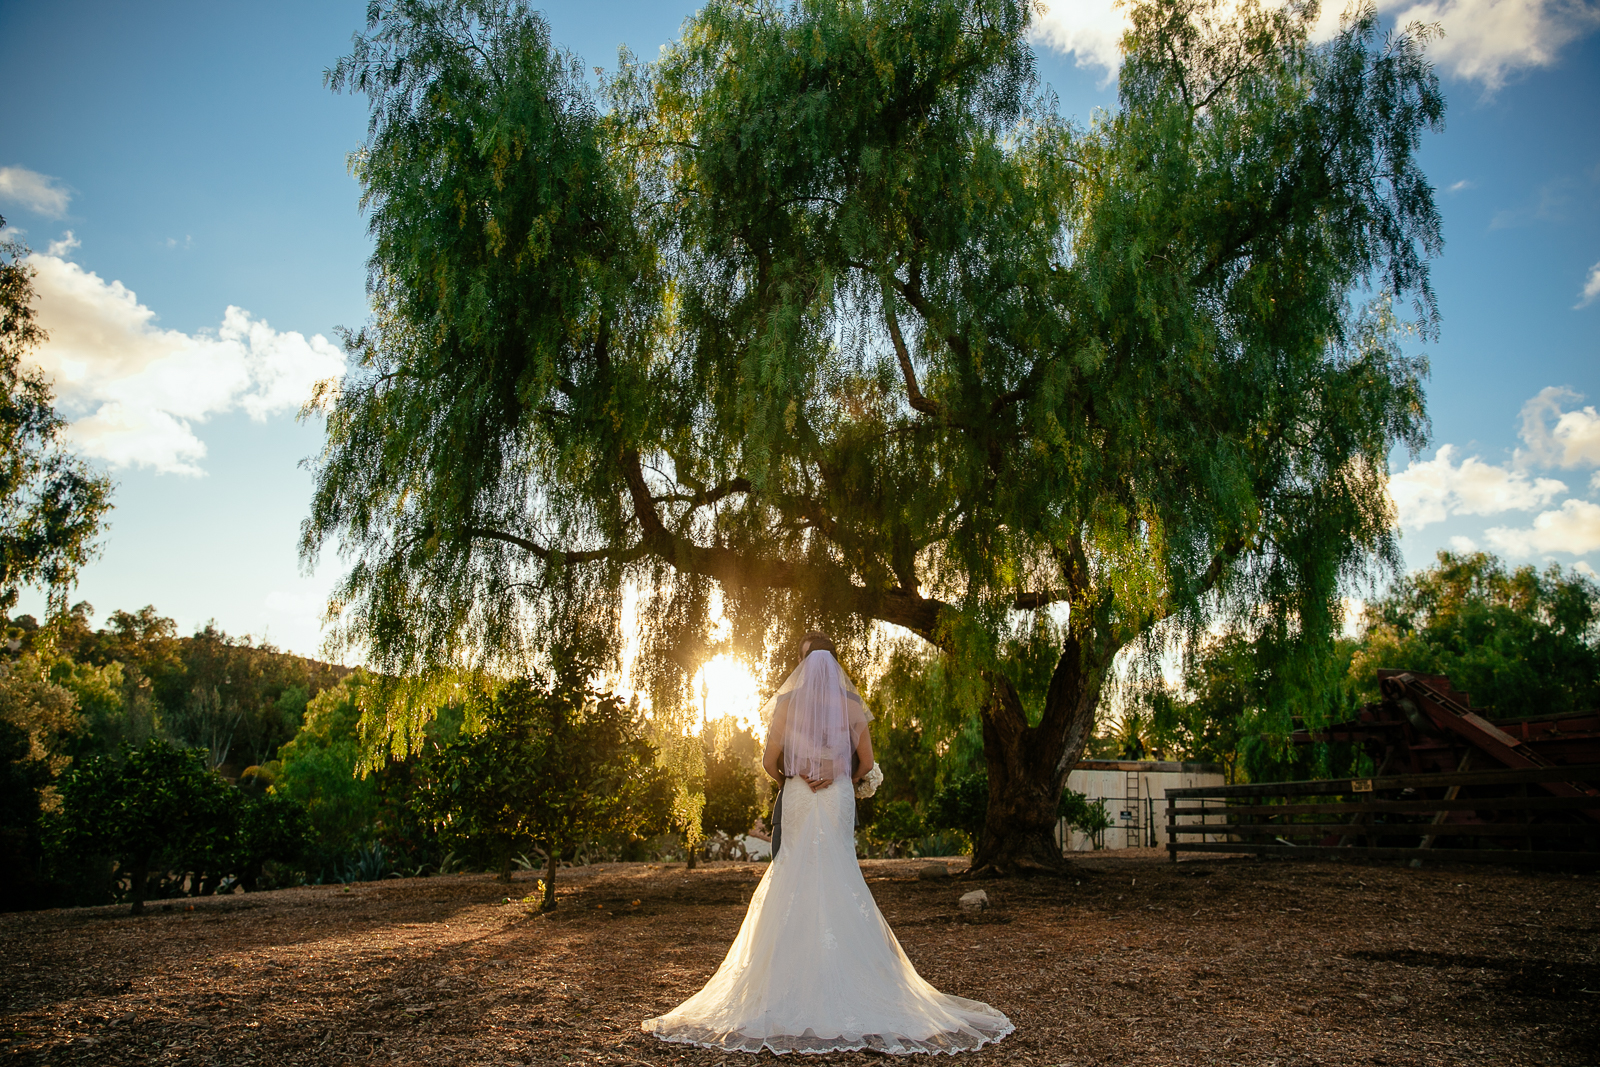 SAMANTHA_&_LUCAS_LEO_CARRILLO_LEAF_WEDDING_PHOTOGRAPHY_20147X9A9019.JPG